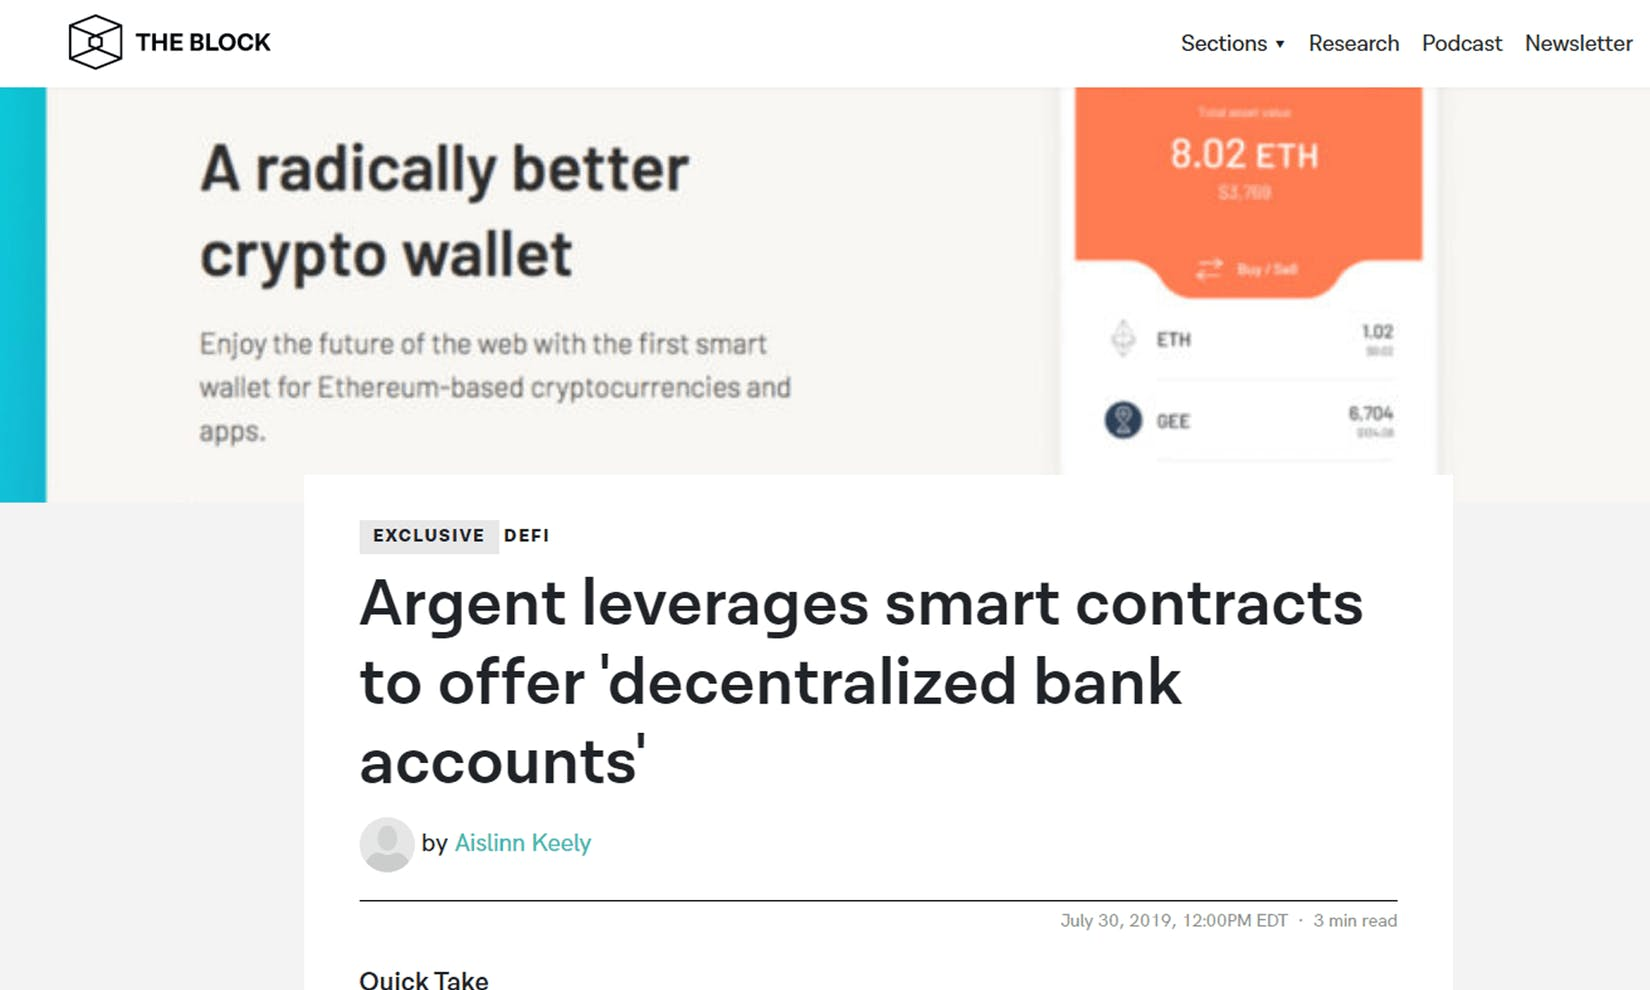 TheBlock explains how Argent uses smart contracts